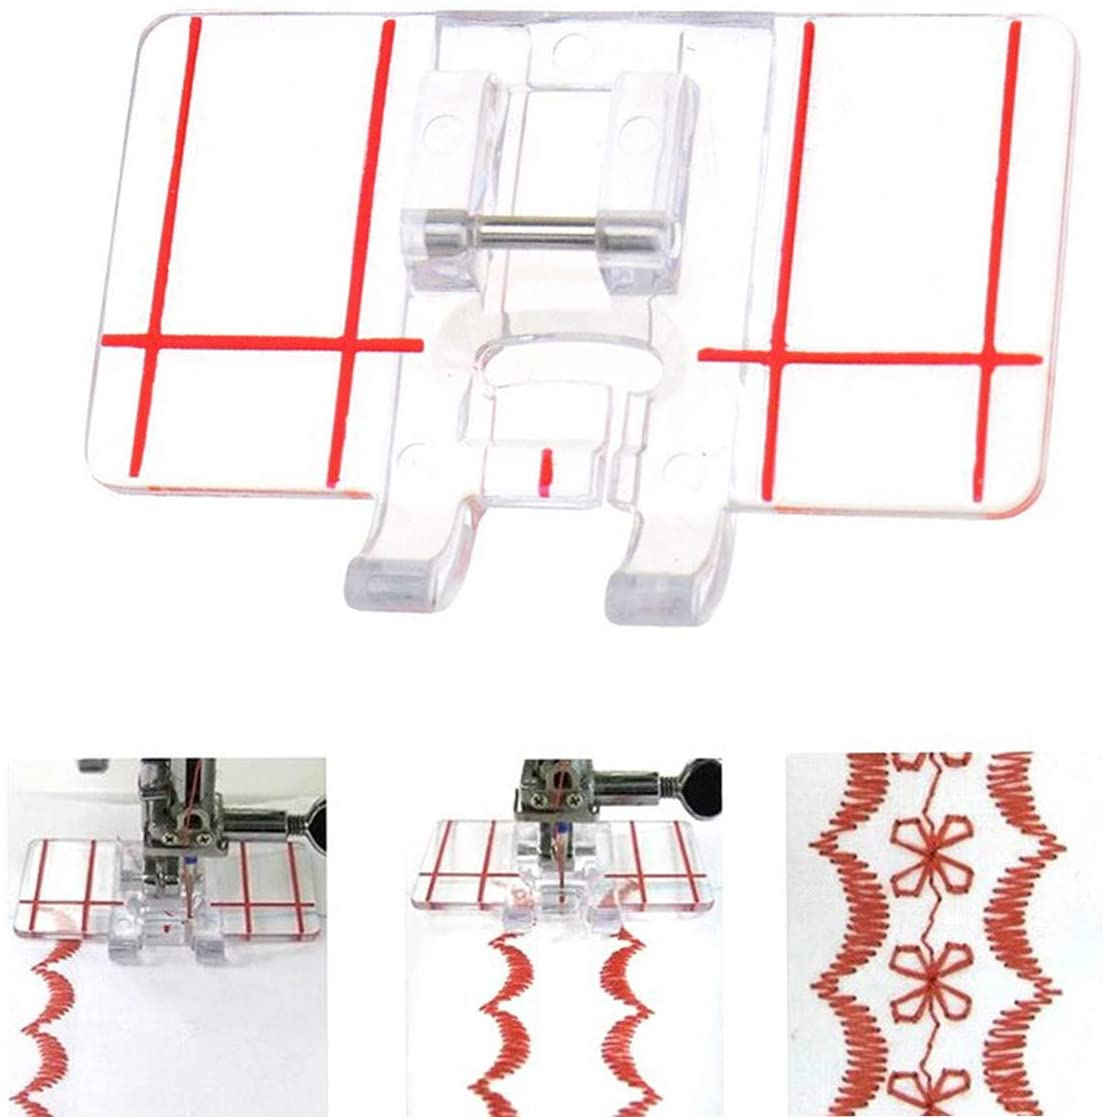 Border Guide Sewing Machine Presser Foot - Fits All Low Shank Snap-On Singer, Brother, Babylock, Euro-Pro, Simplicity, White, Janome, Kenmore, Juki, New Home